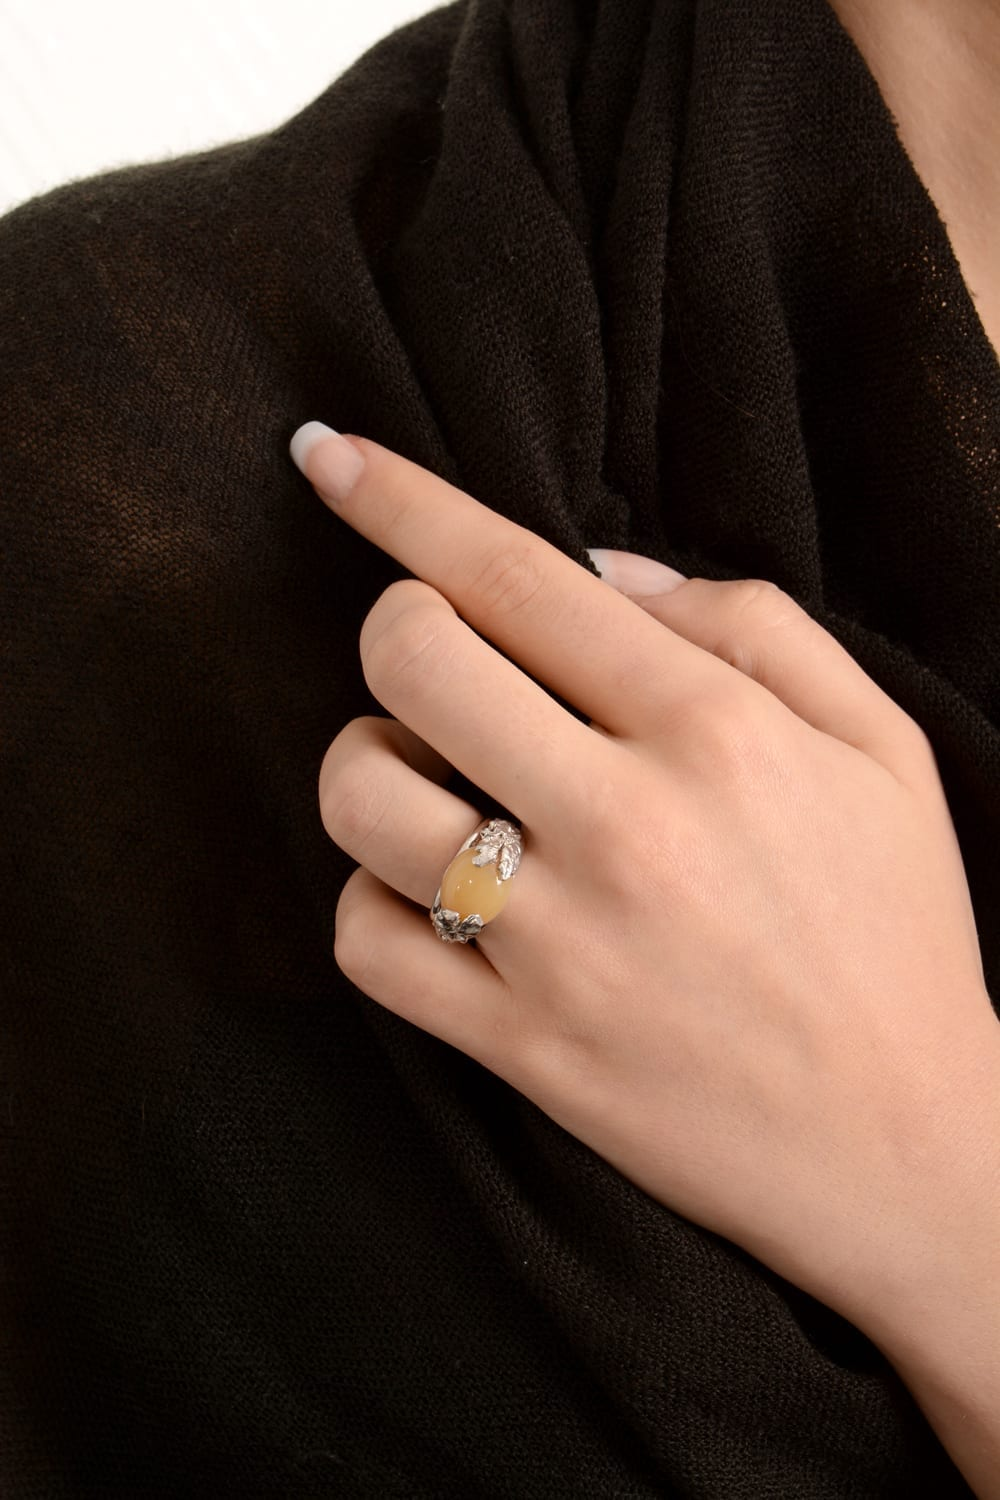 Ring with a yellow moonstone cabochon set in textured silver.